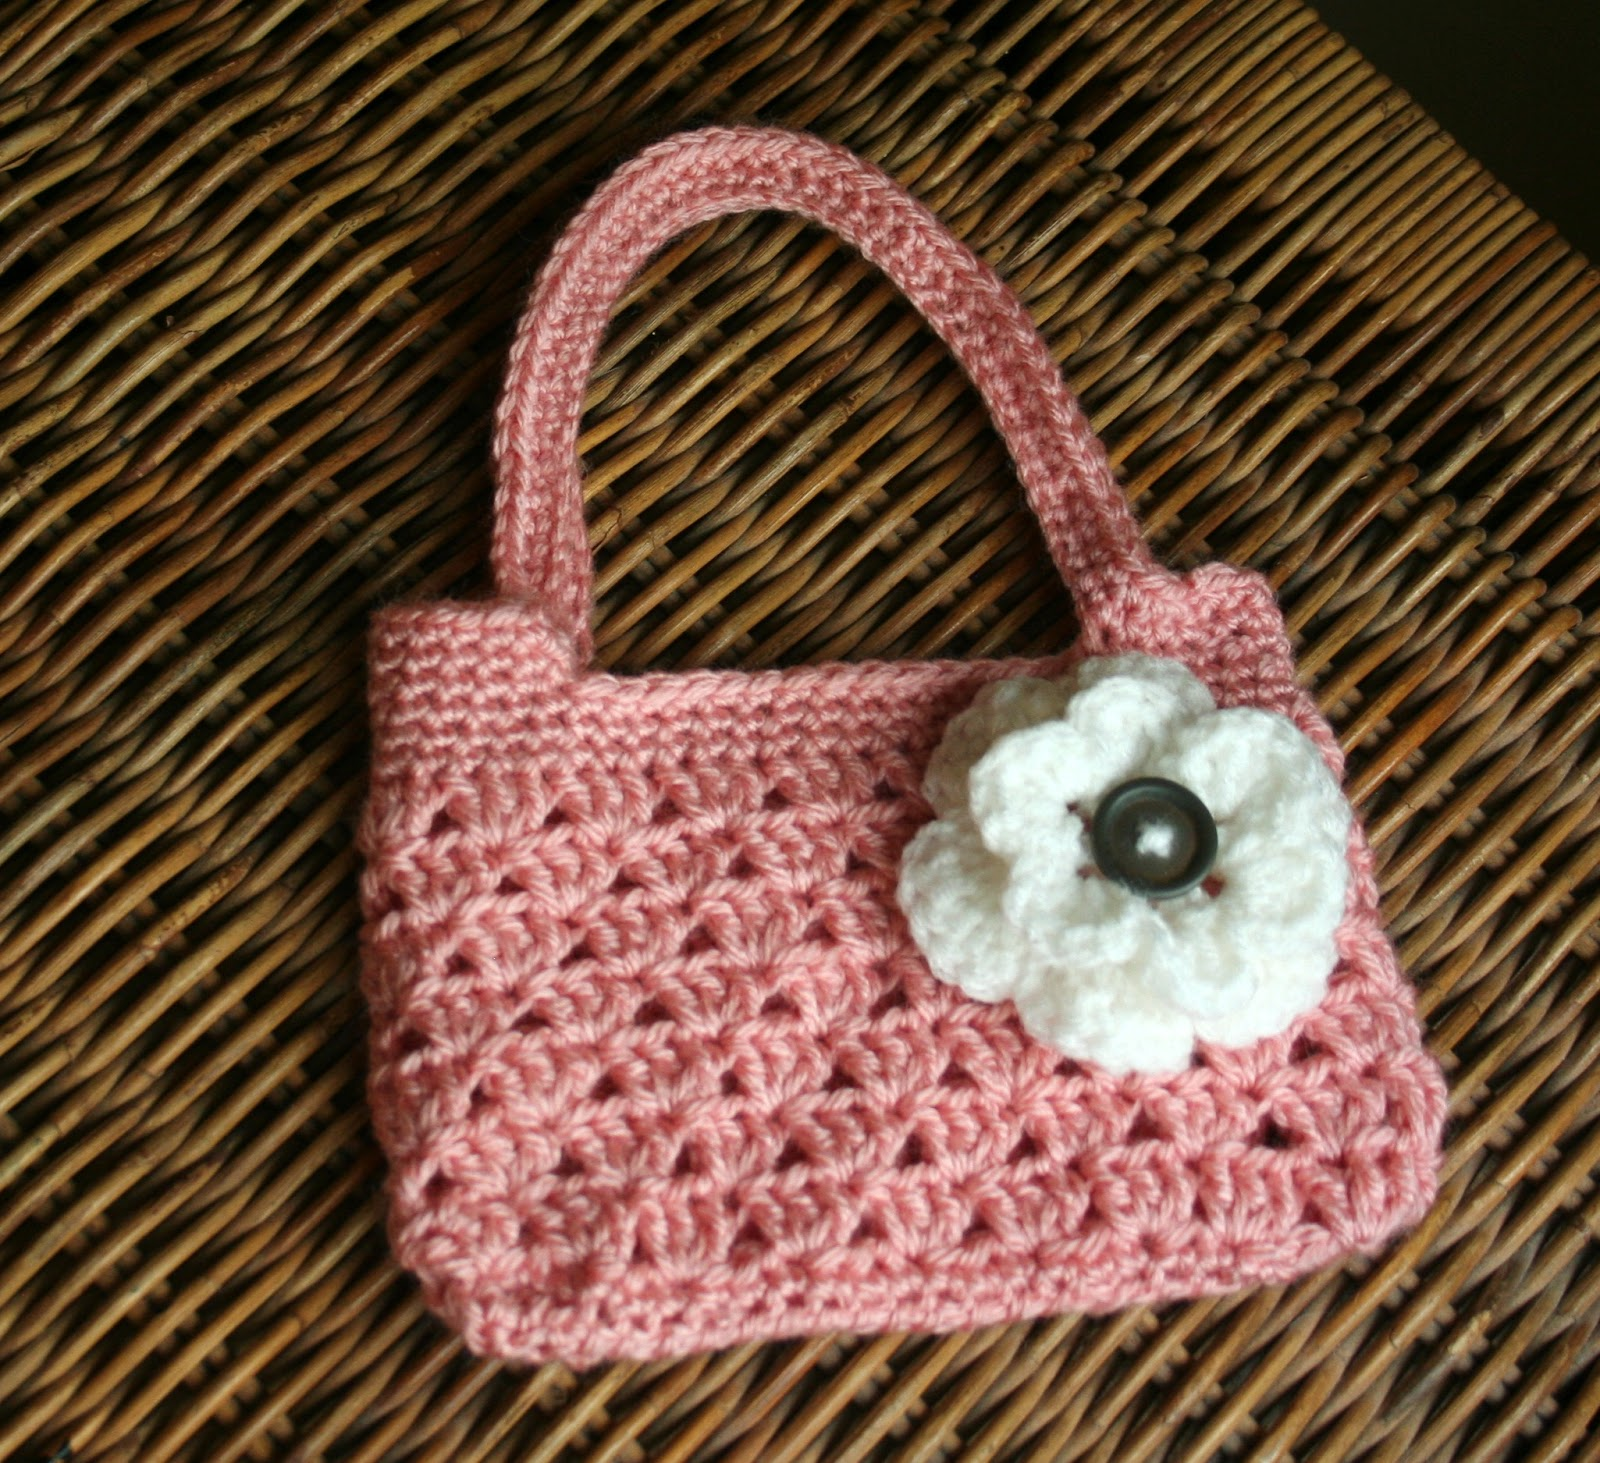 Free Crochet Handbag Patterns : Tampa Bay Crochet: Free Easy Crochet Purse Pattern